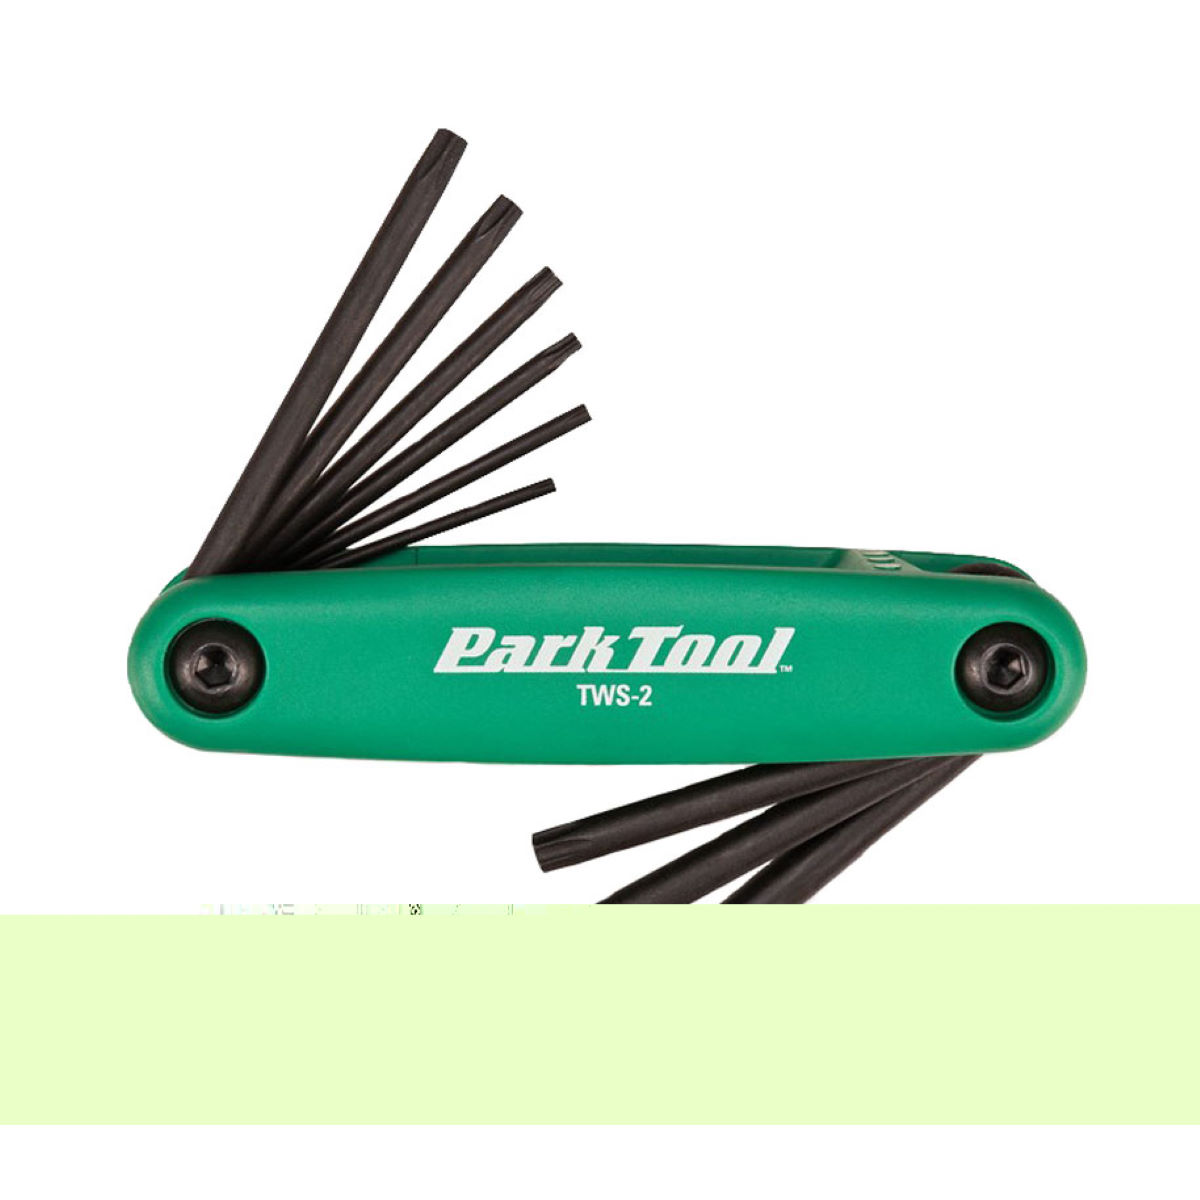 Park Tools Fold Up Torx Wrench Set